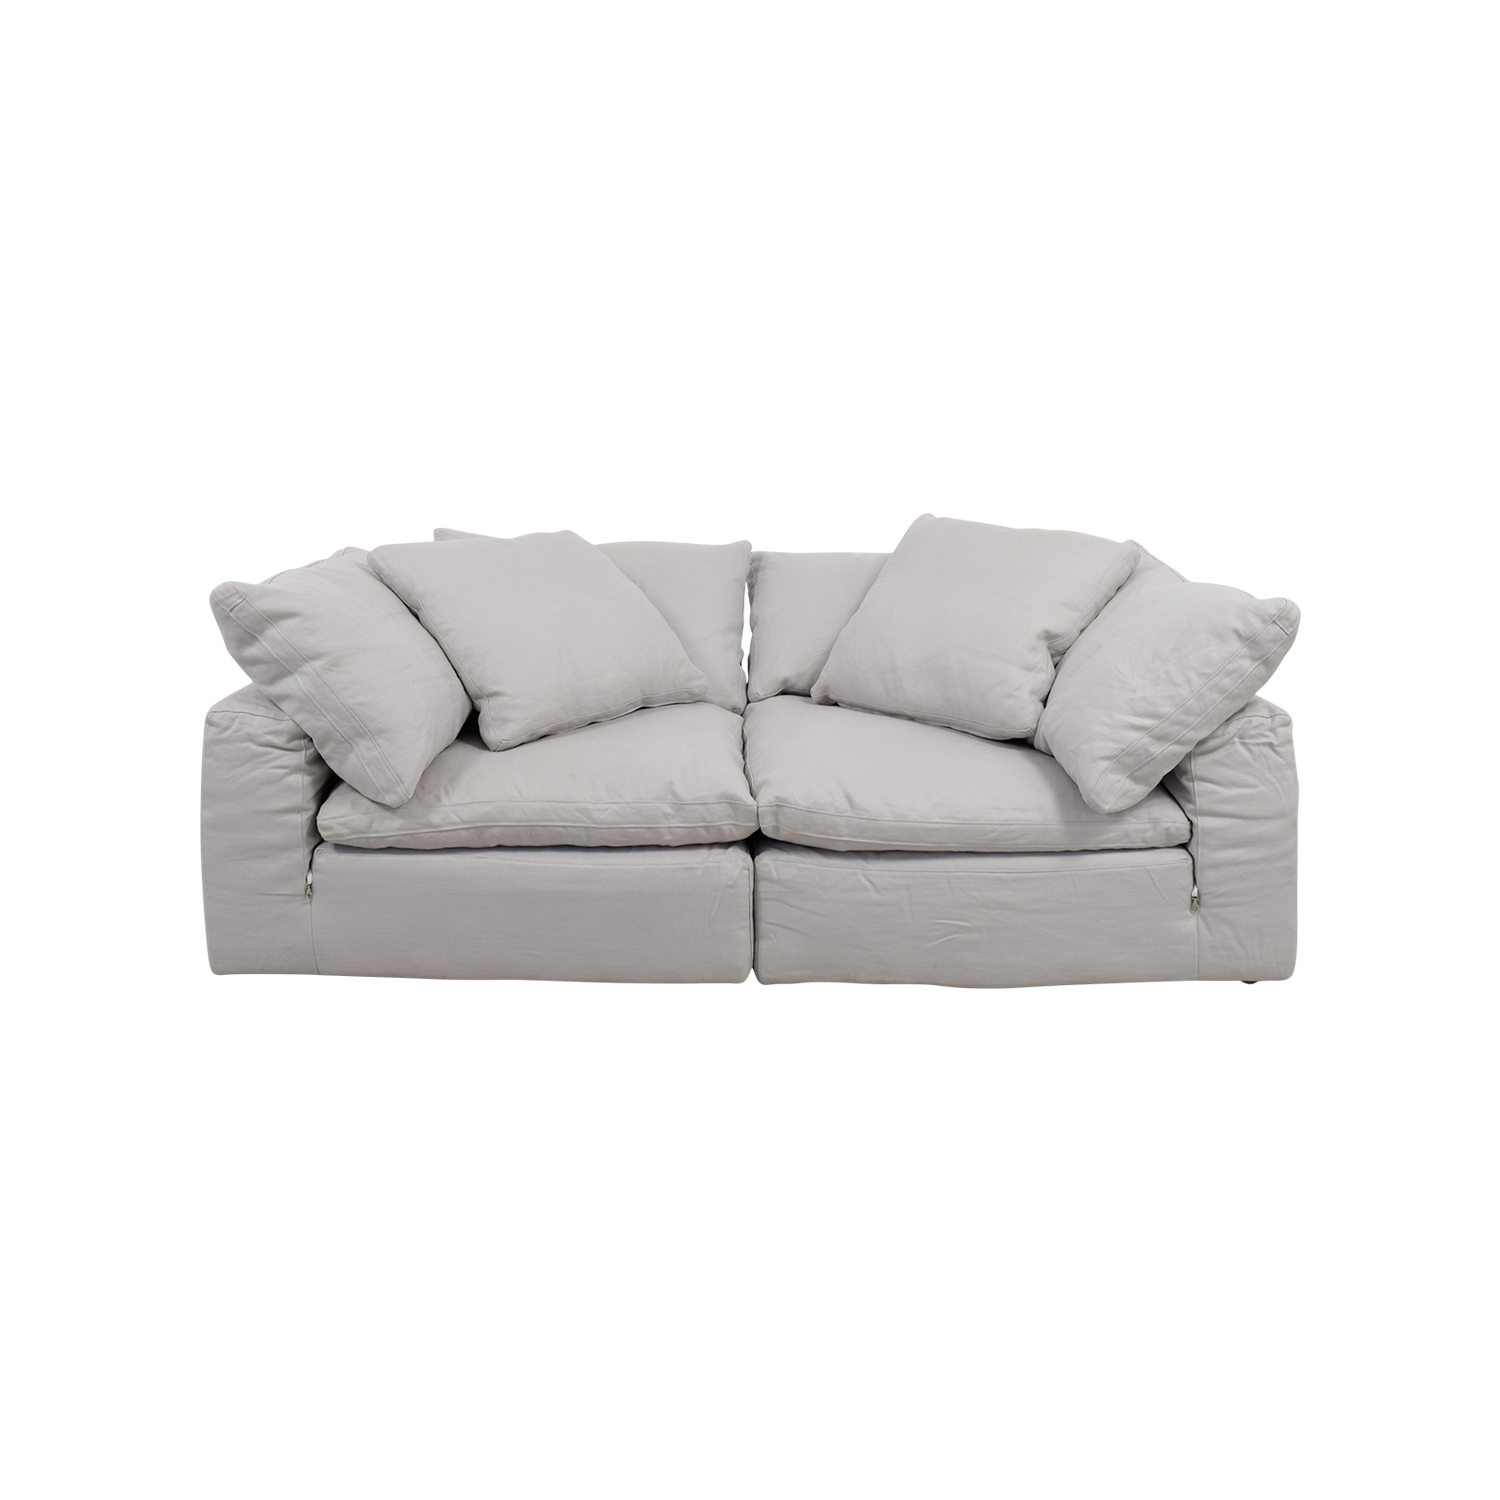 Restoration Hardware The Cloud White Sofa Online